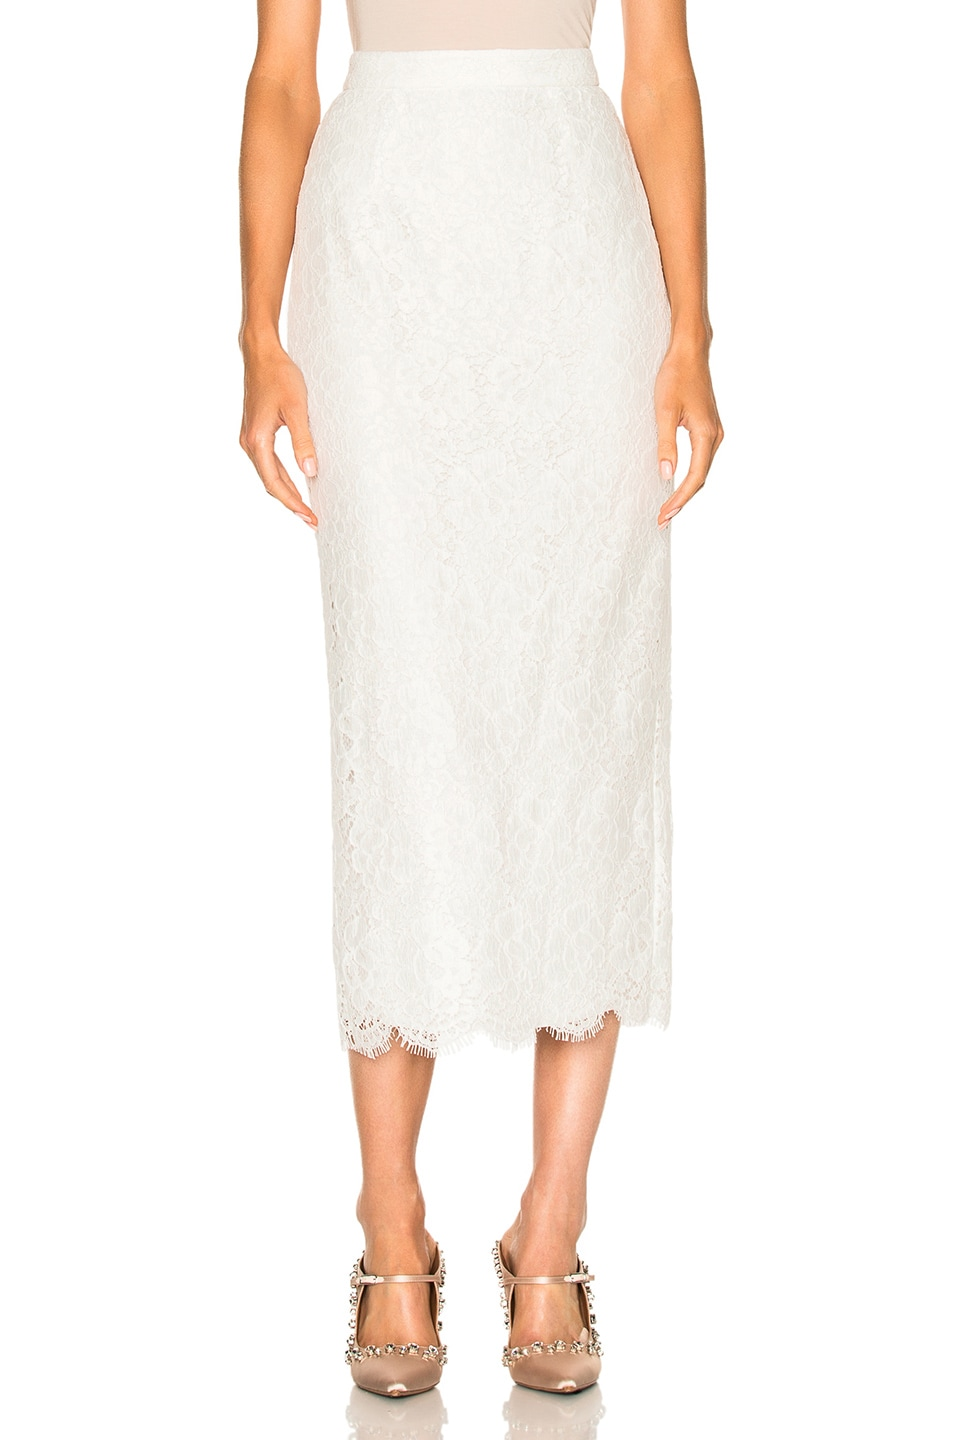 Image 1 of Houghton Gwenever Guipure Lace Skirt in White